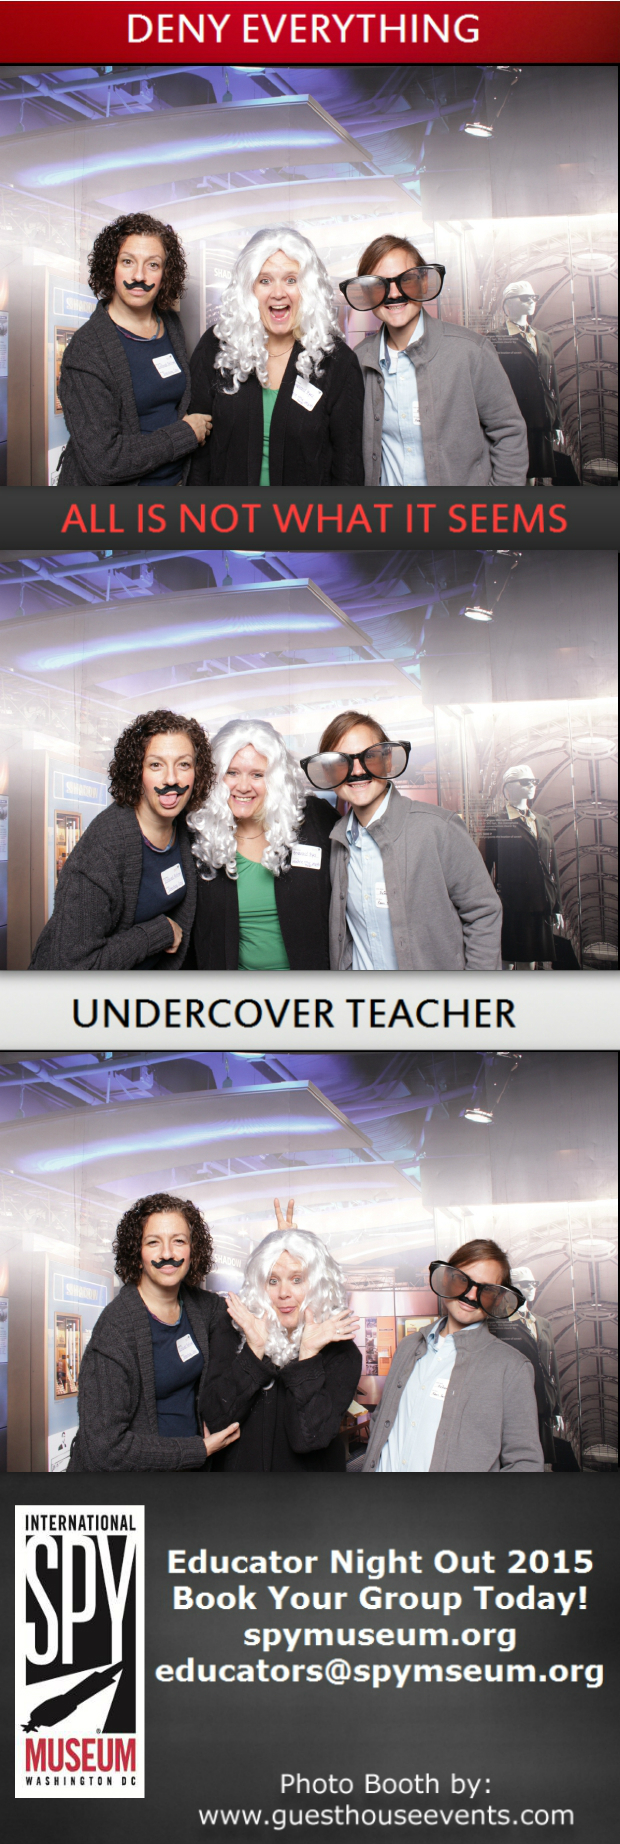 Guest House Events Photo Booth Spy Museum Educator Night Out (15).jpg